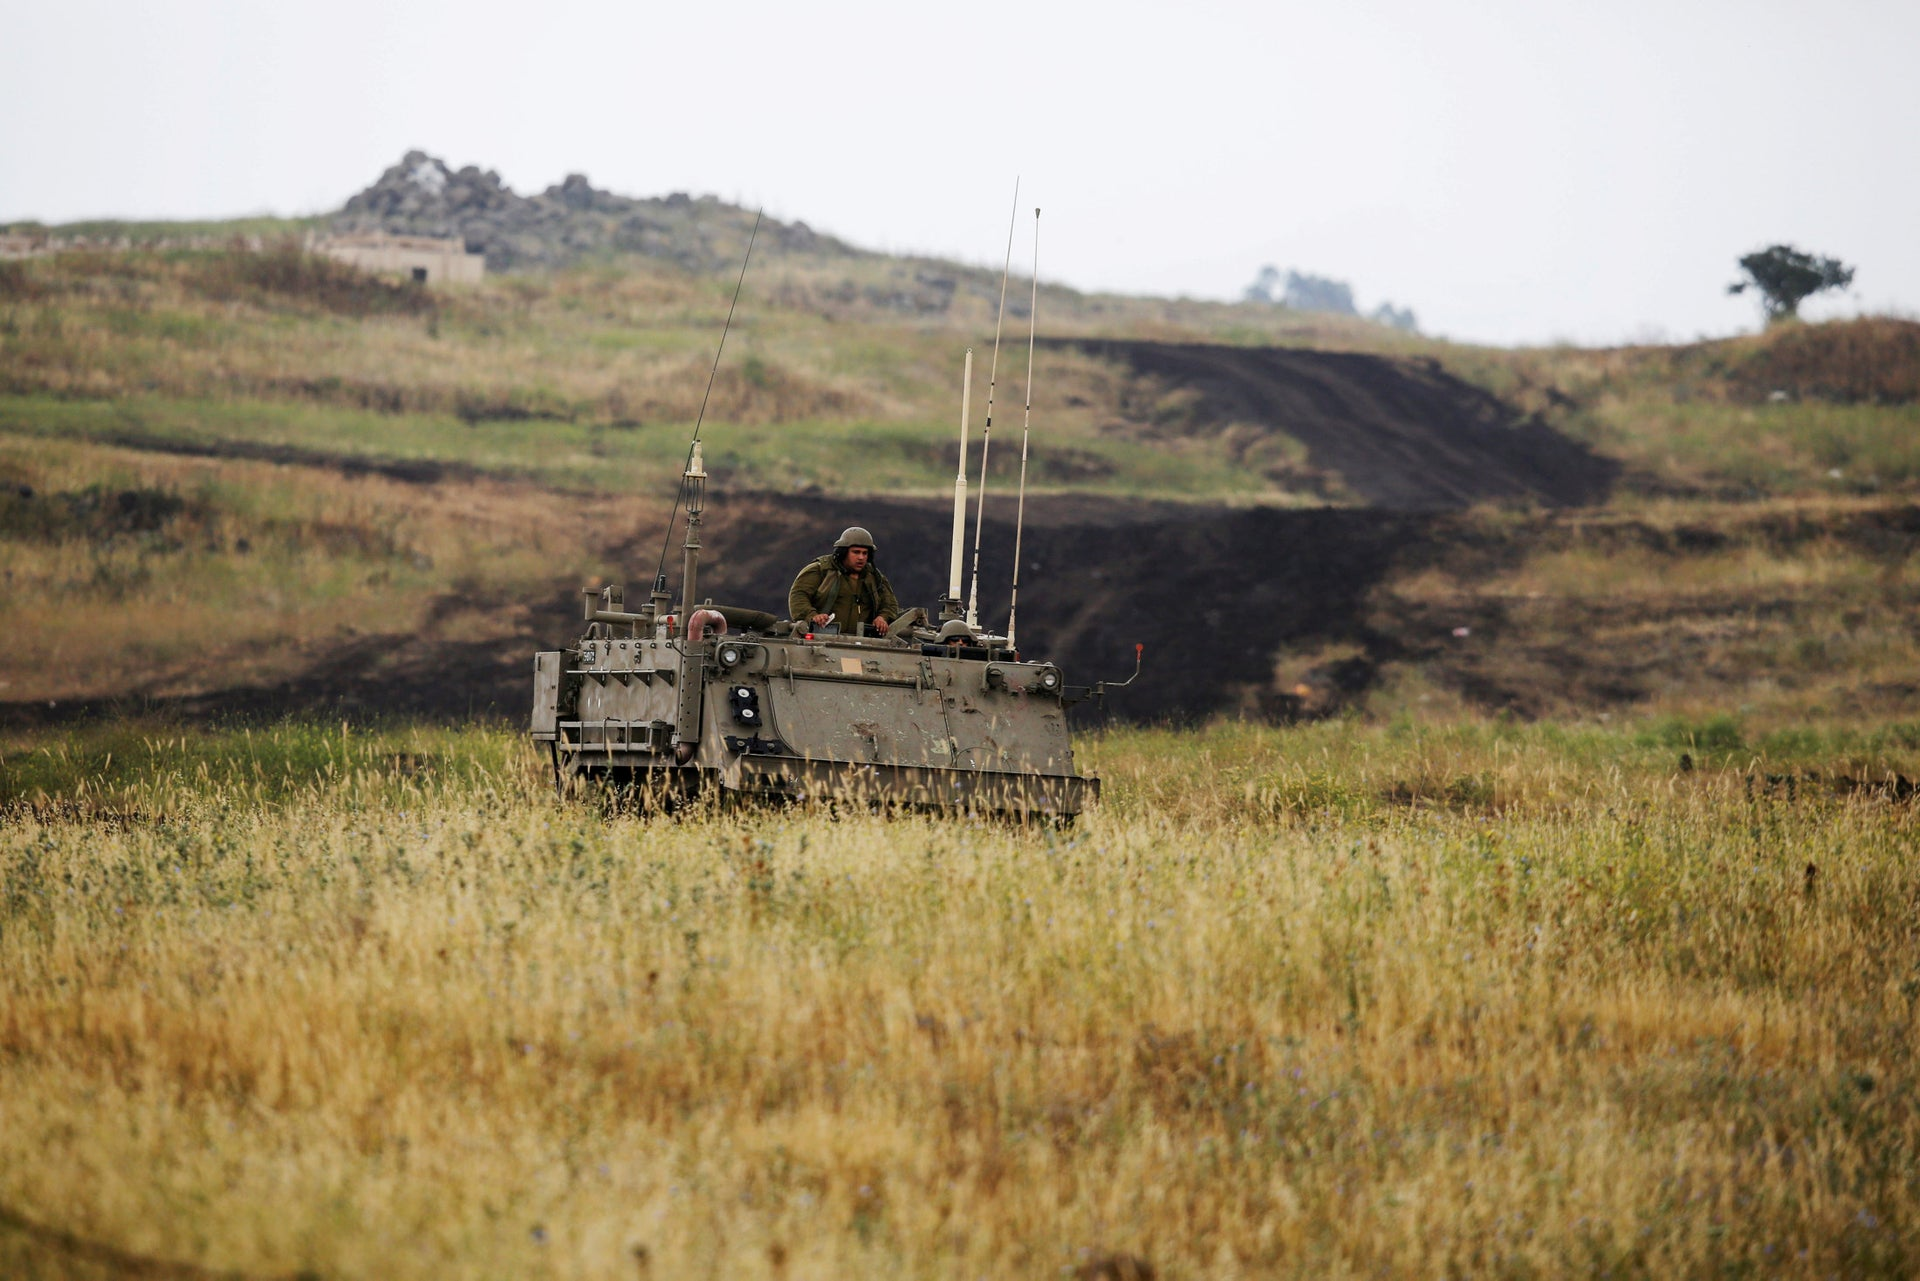 An Israeli soldier sits on an APC as it drives near the Israeli side of the border with Syria, May 9, 2018.